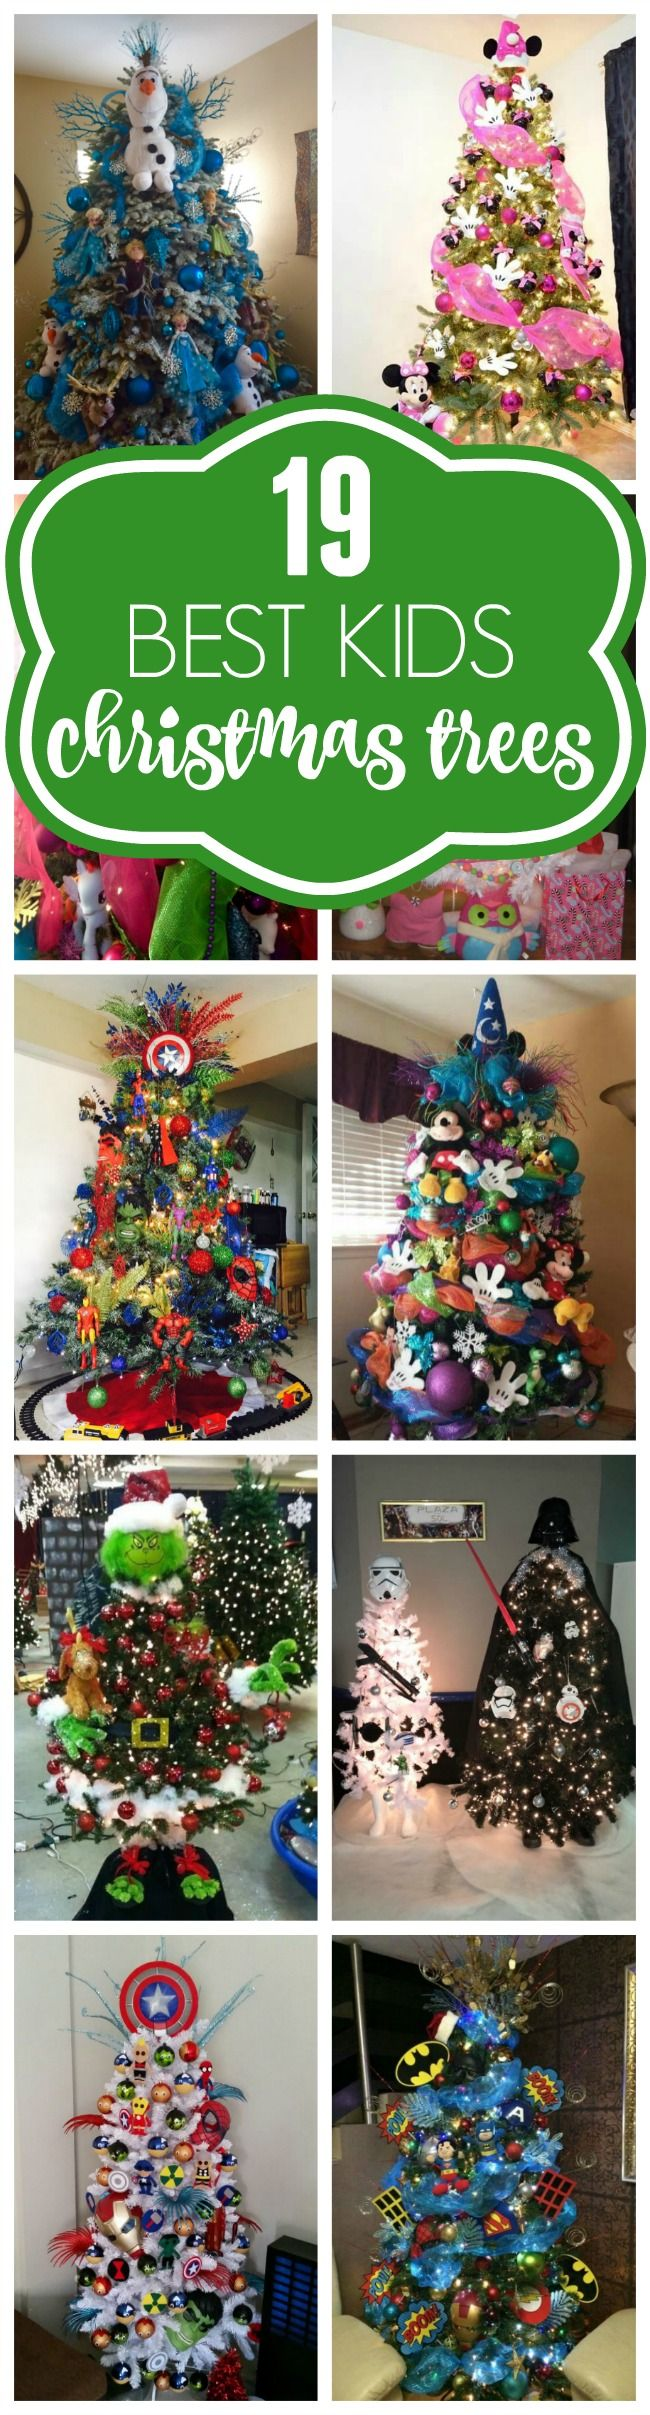 19 Most Creative Kids Christmas Trees Pretty My Party Party Ideas Kids Christmas Christmas Trees For Kids Disney Christmas Tree